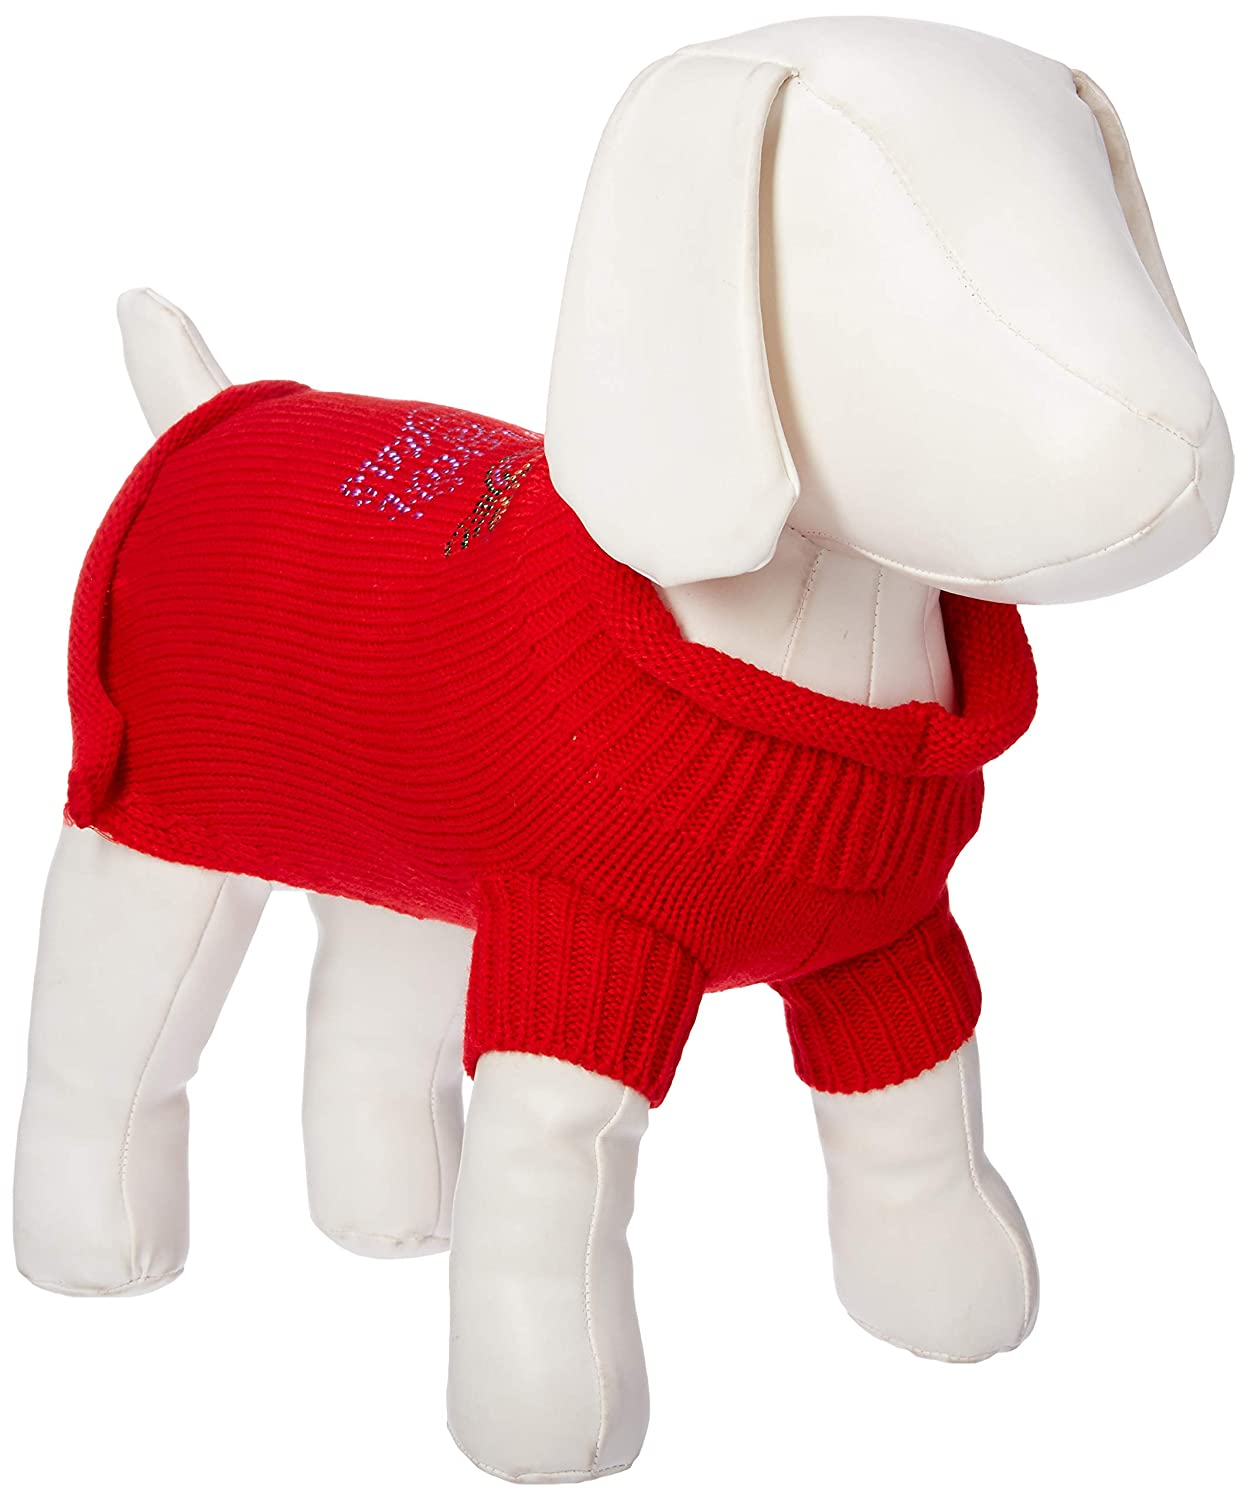 Red Small Red Small Mirage Pet Products Mardi Gras Rhinestud Knit Pet Sweater, Small, Red